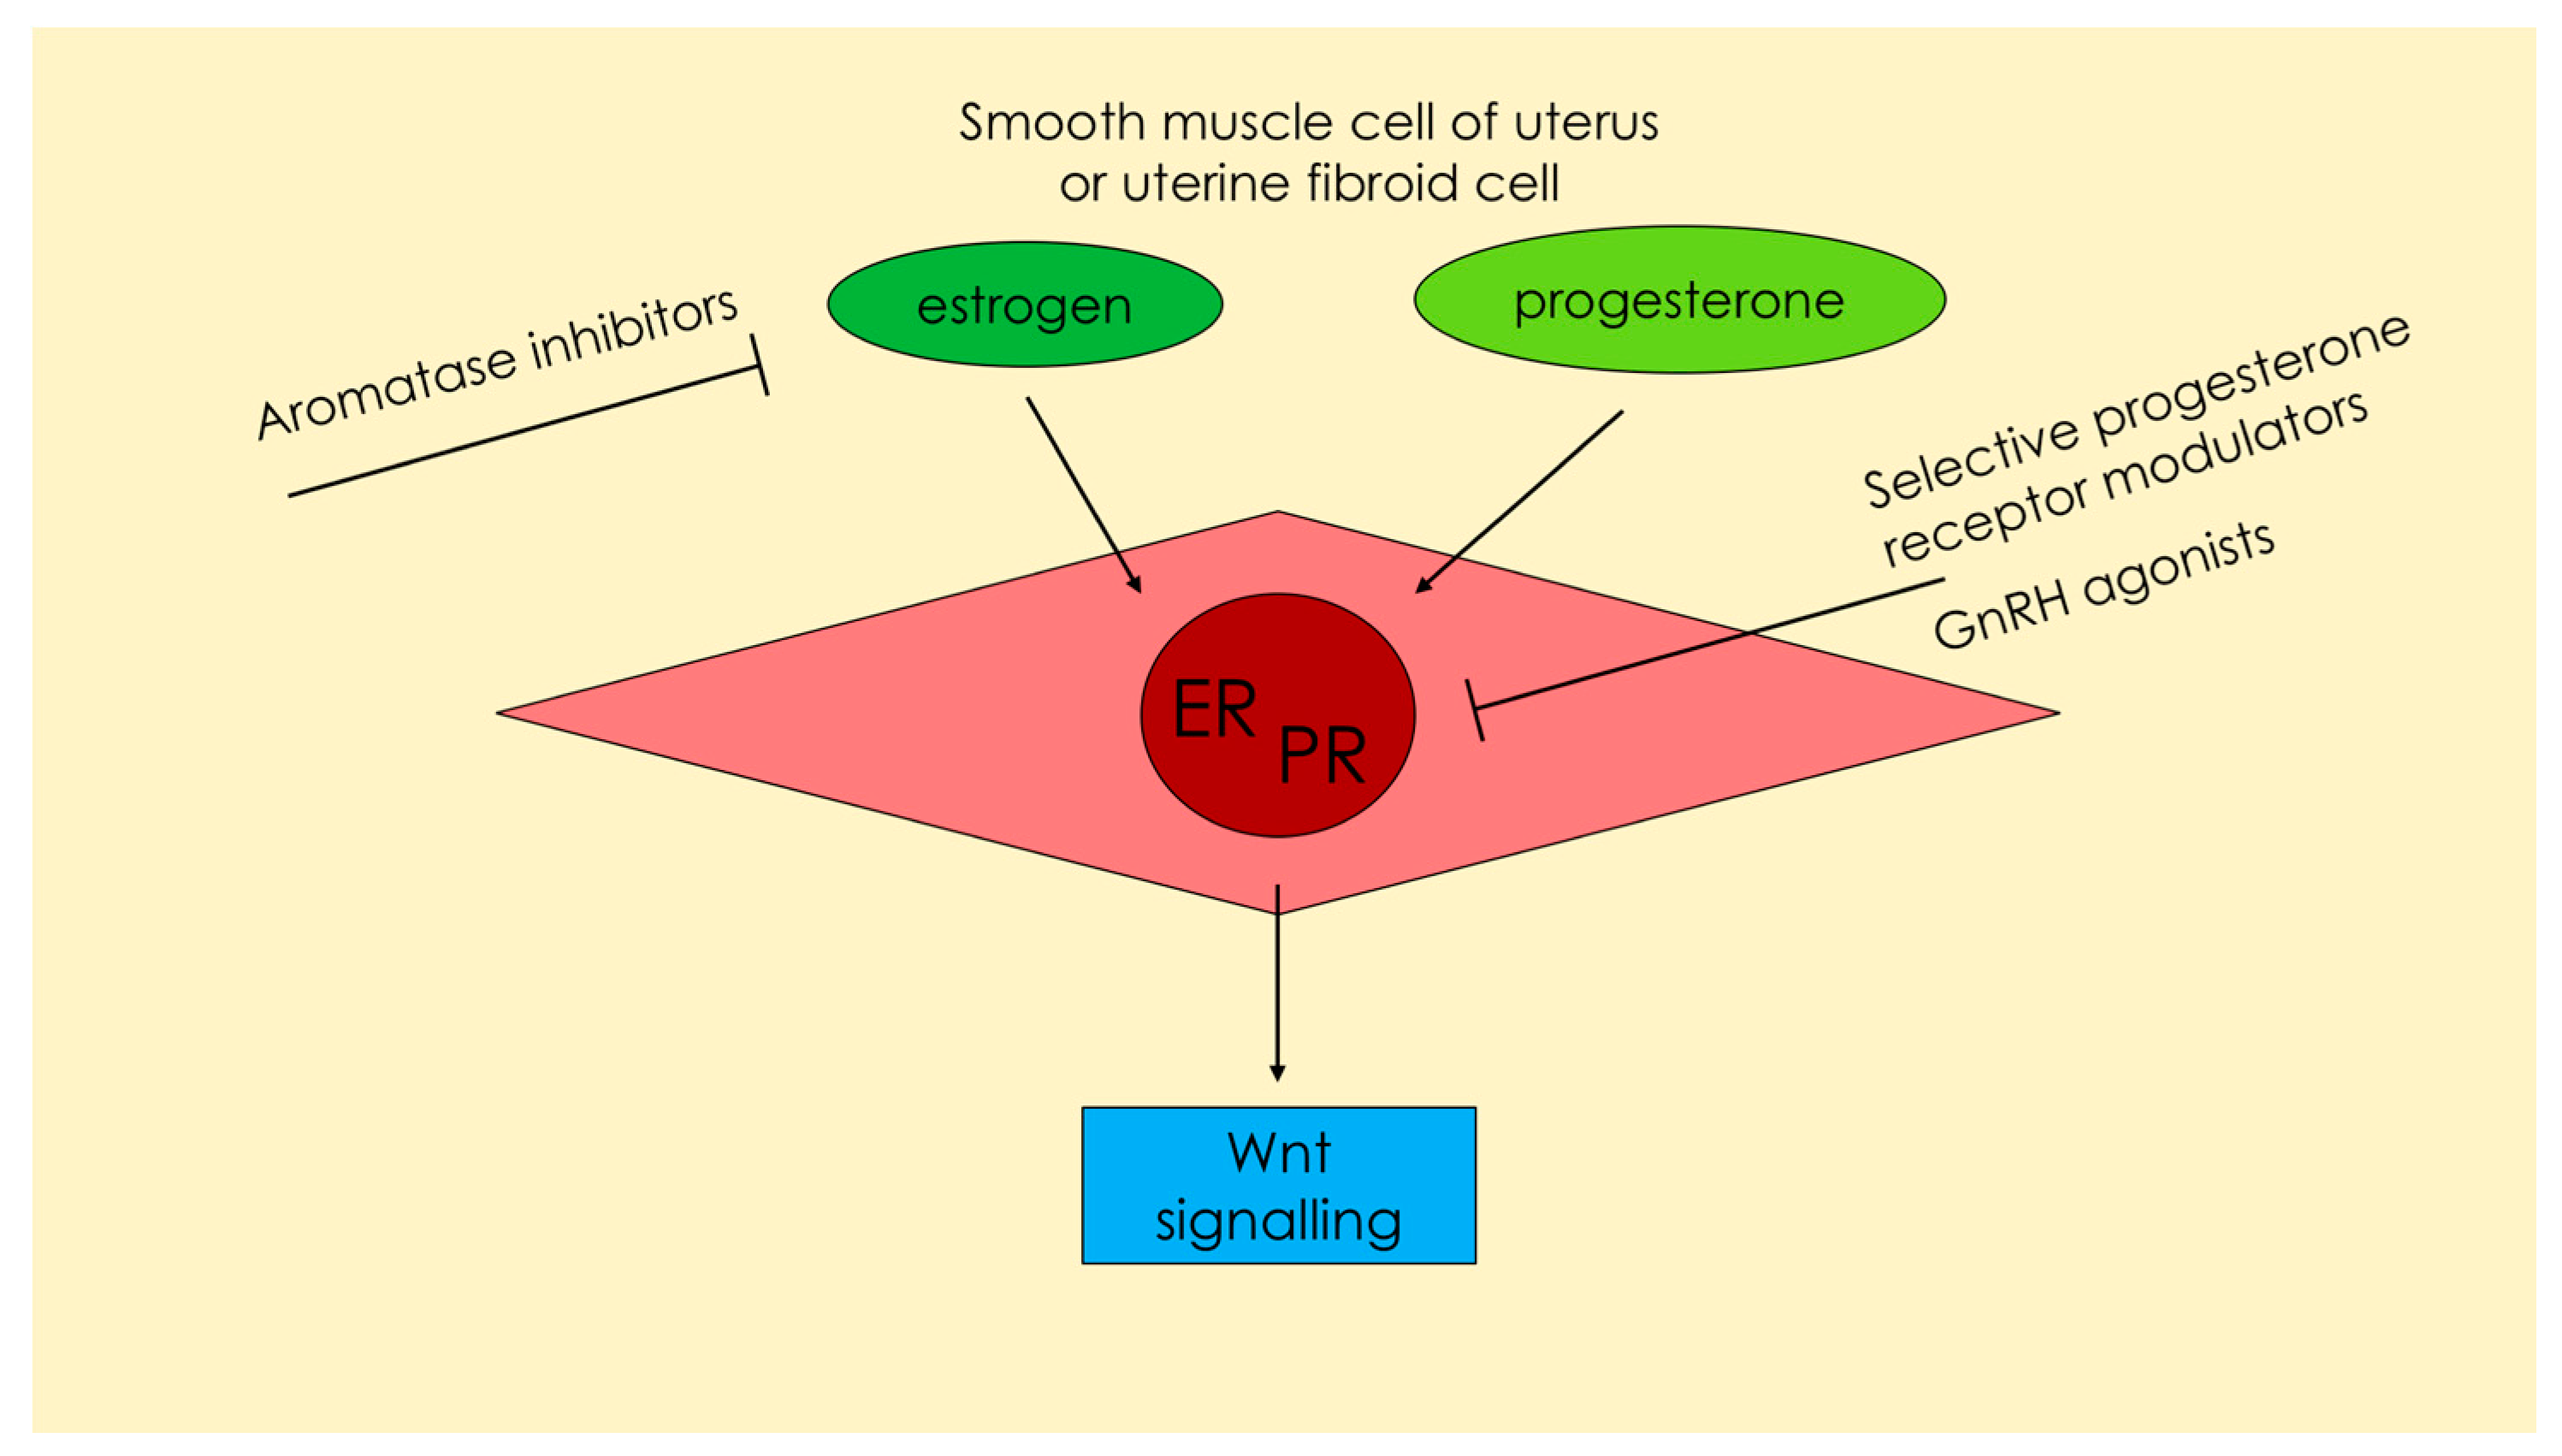 Drugs affecting uterine smooth muscle